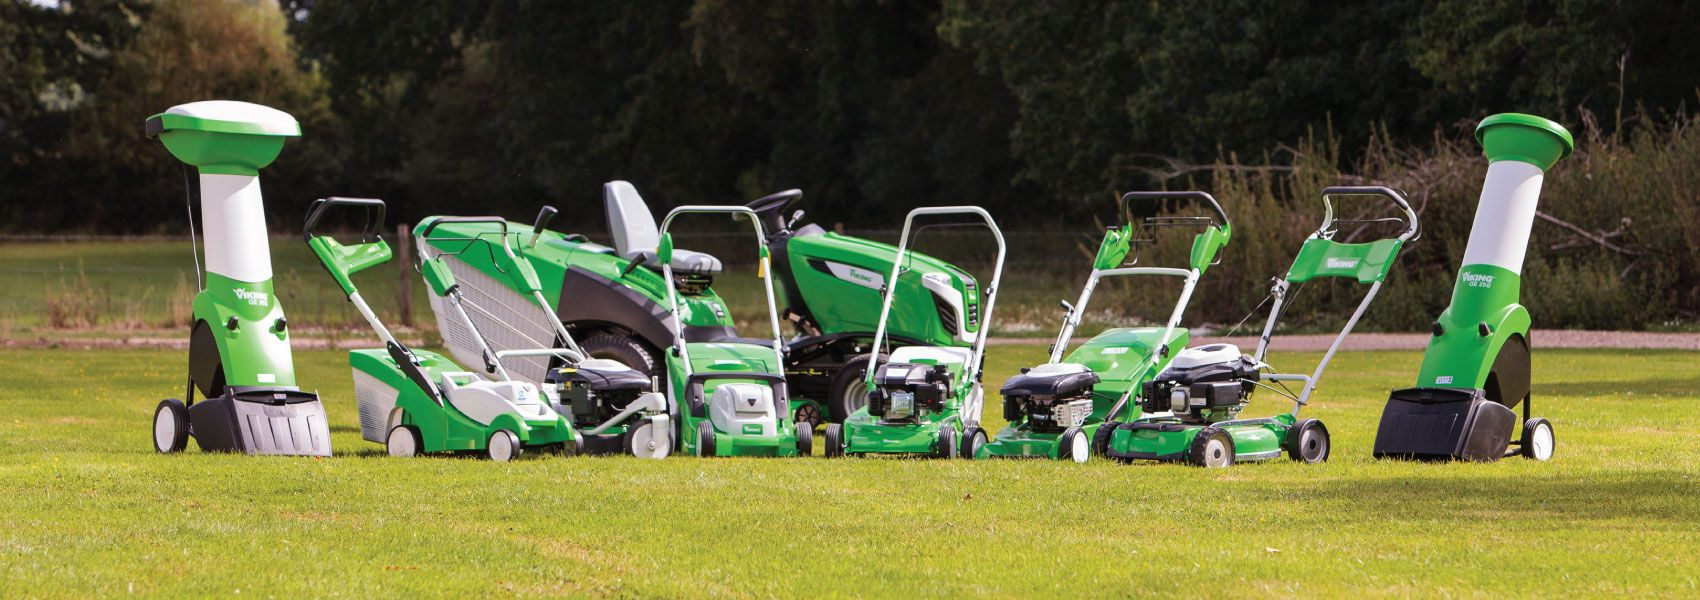 mowers-uk-viking-products-hampshire